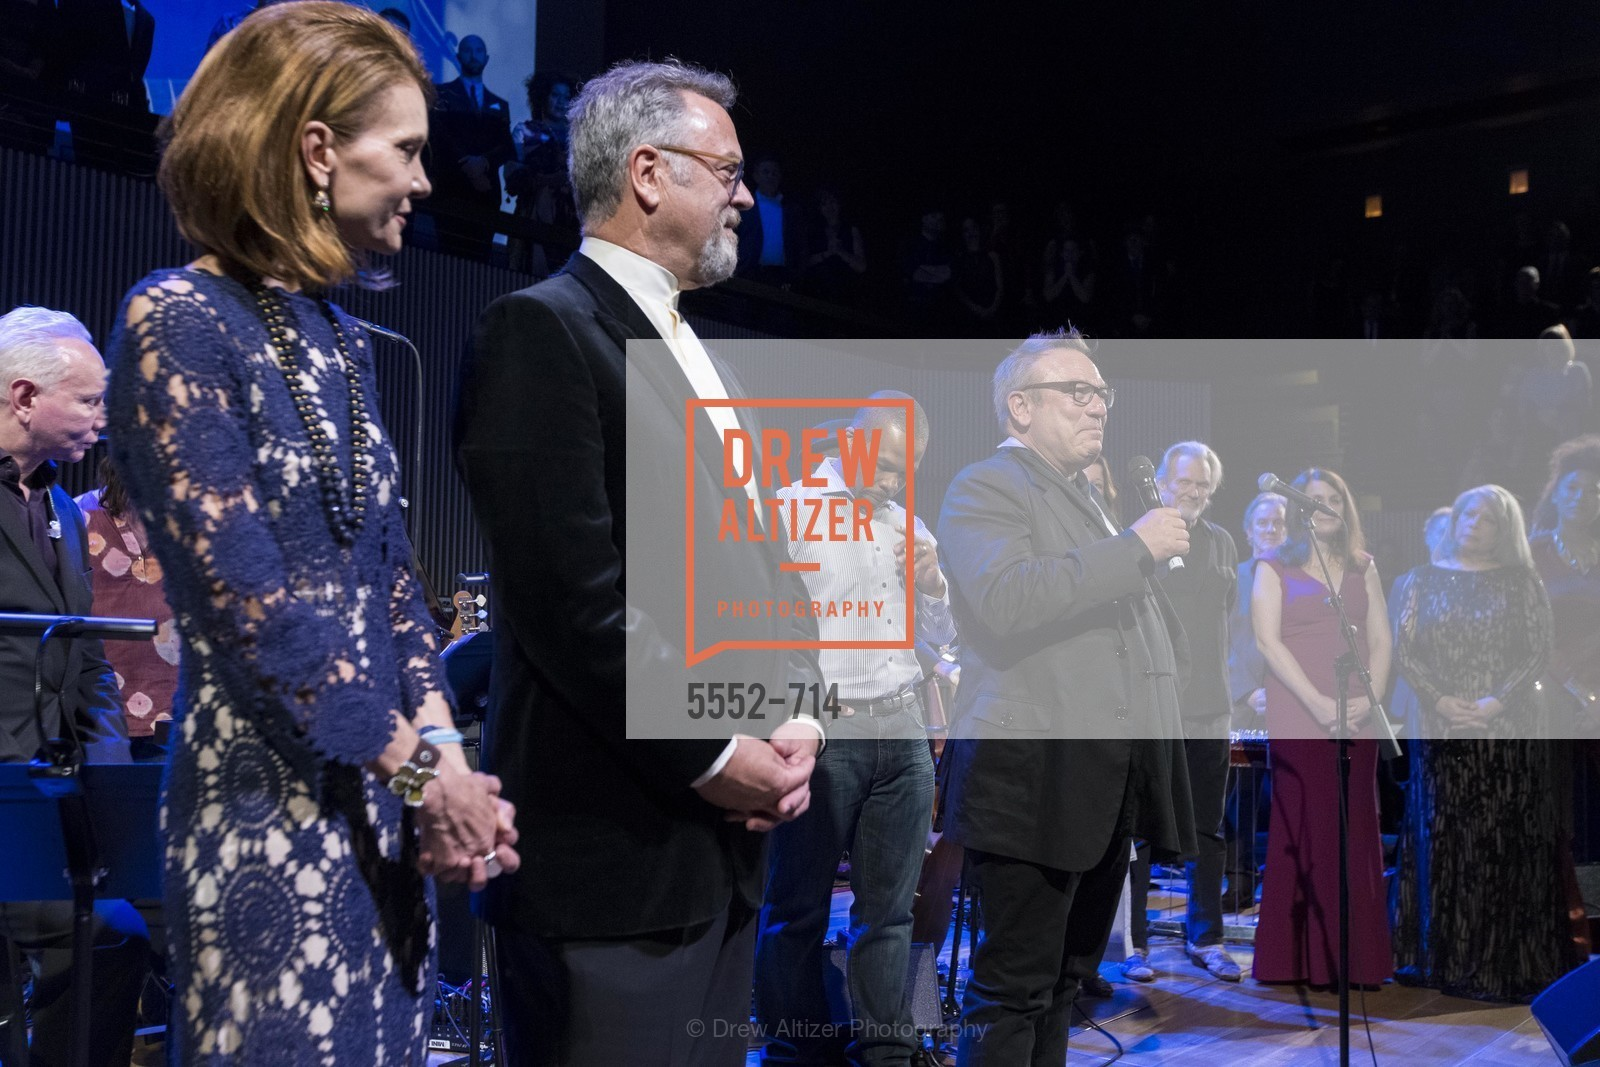 Avashai Cohen, Penny Coulter, Nion McEvoy, Randall Kline, Stanlee Gatti, SFJAZZ Gala 2015 Honors Joni Mitchell with Lifetime Achievement Award, US, May 9th, 2015,Drew Altizer, Drew Altizer Photography, full-service agency, private events, San Francisco photographer, photographer california